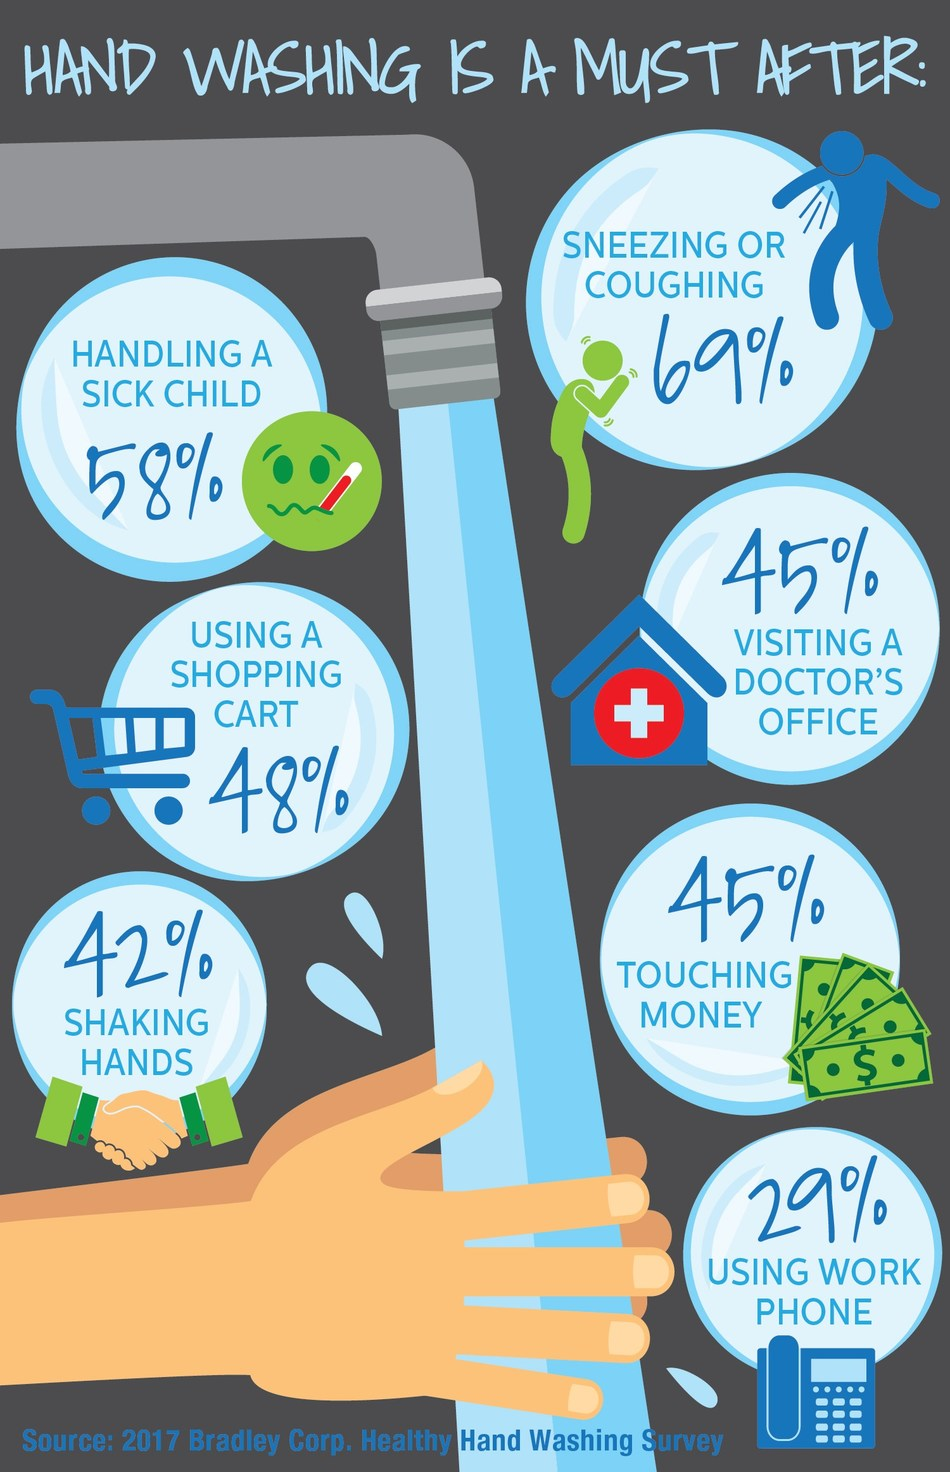 According to the 2017 Healthy Hand Washing Survey, a majority of Americans feel they must wash their hands after sneezing, coughing or handling a sick child.